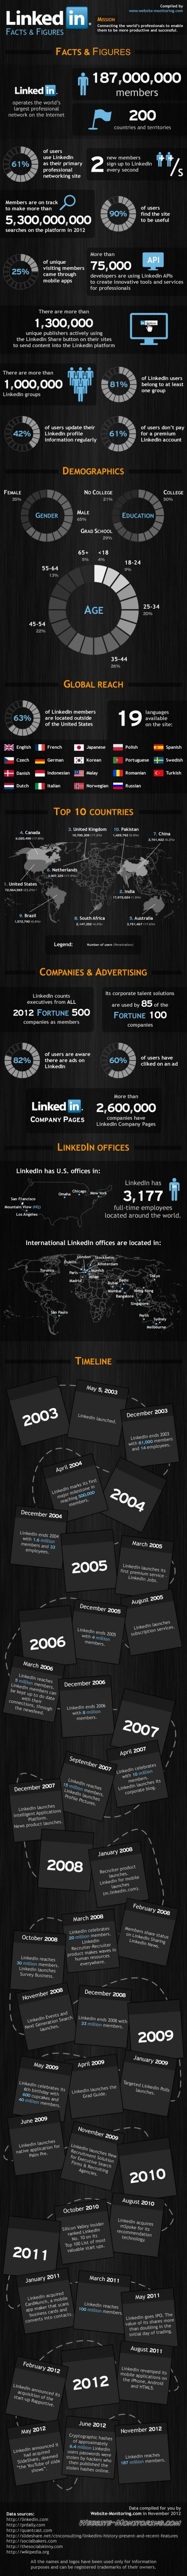 LinkedIn Facts and Figures [INFOGRAPHIC] | Talent Communities | Scoop.it